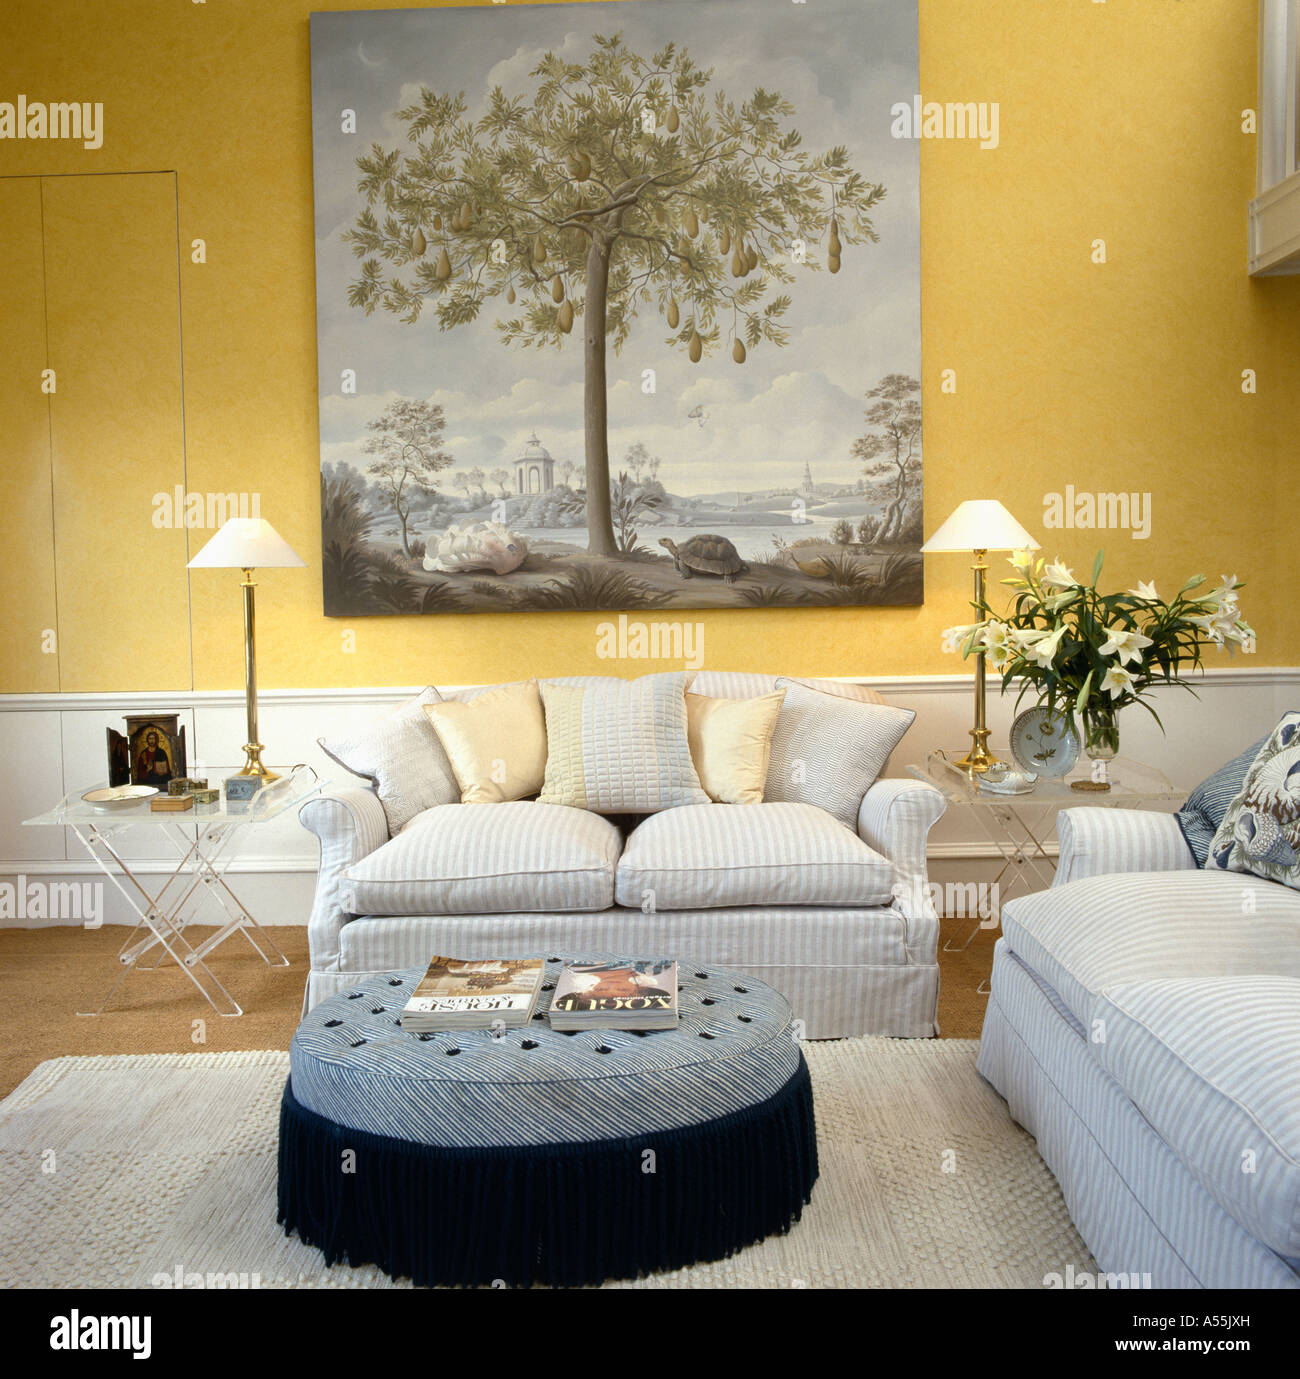 Large 18th Century Style Picture Above Pale Gray Sofa In Pale Yellow Living  Room With Large Circular Upholstered Stool